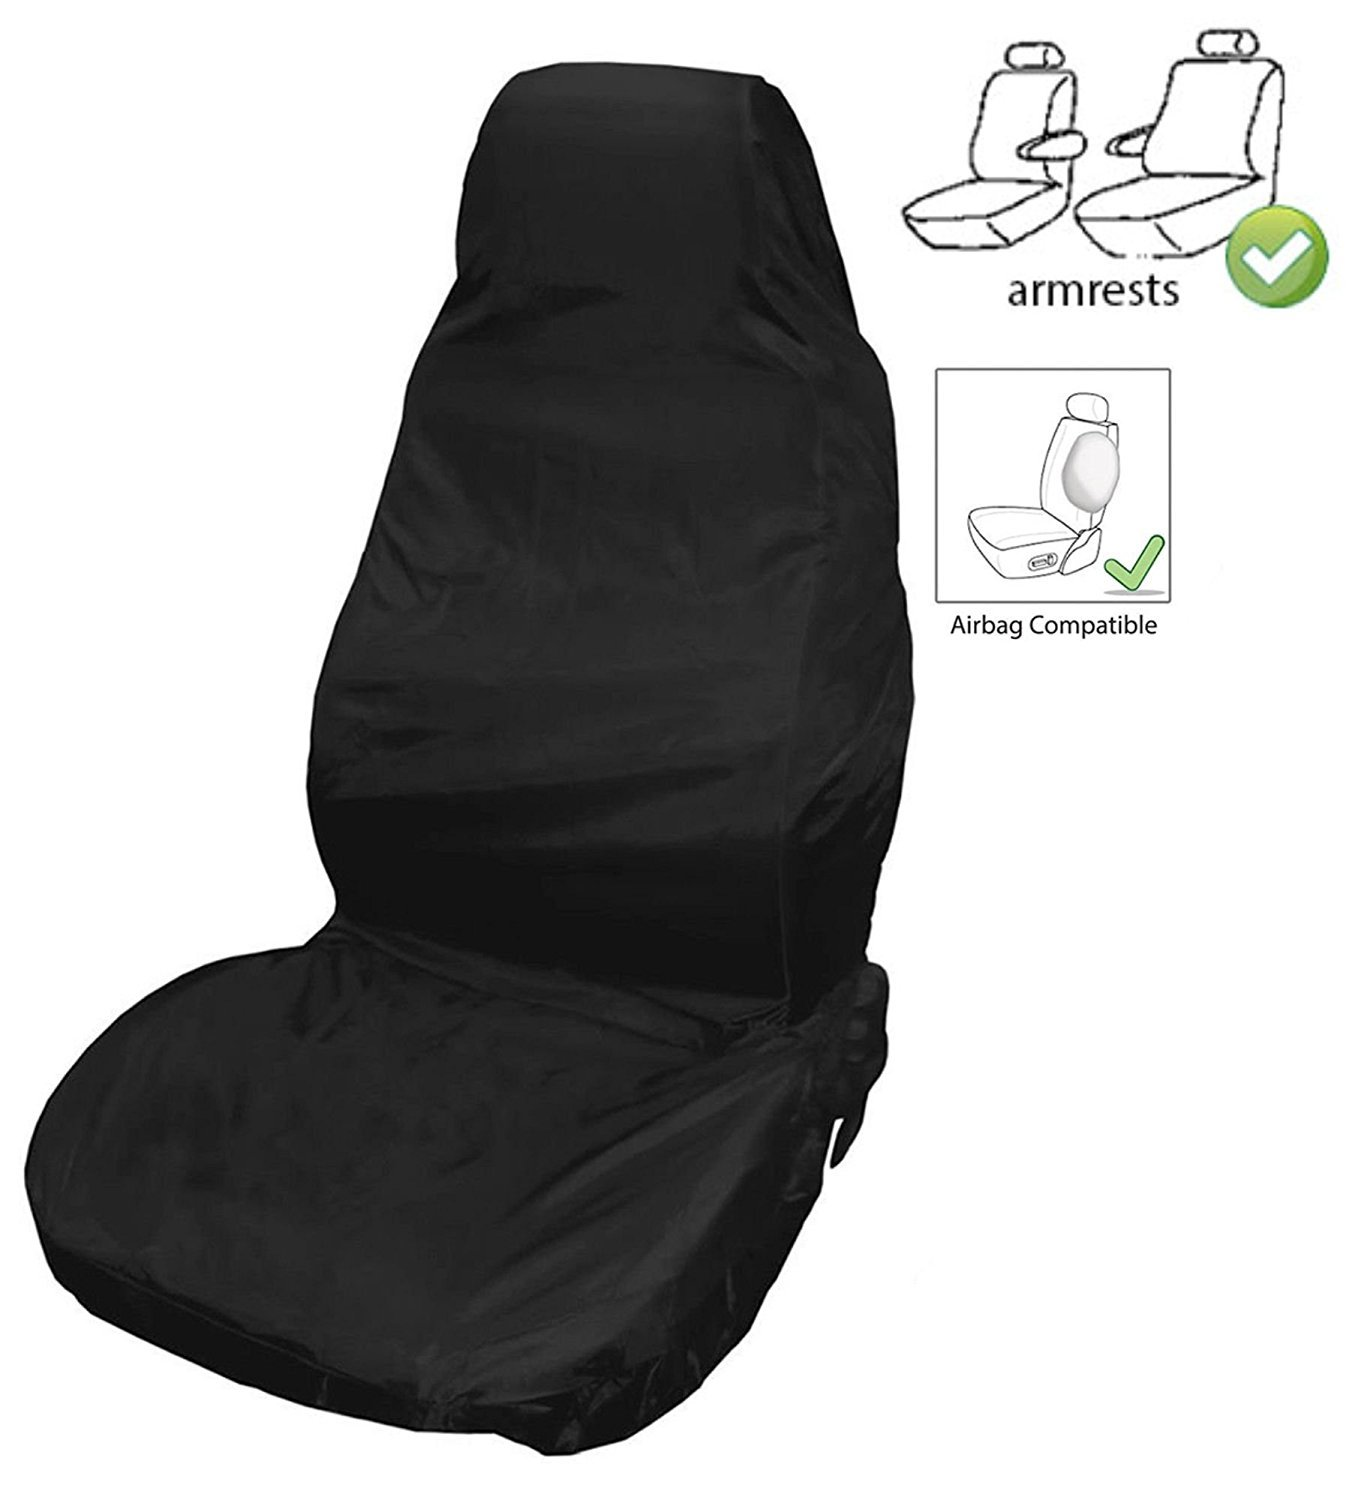 XtremeAuto Lorry/Truck/Bus Front Water Resistant Seat Cover - Heavy Duty & Comfortable For Long Distance Travelling (2) XtremeAuto®